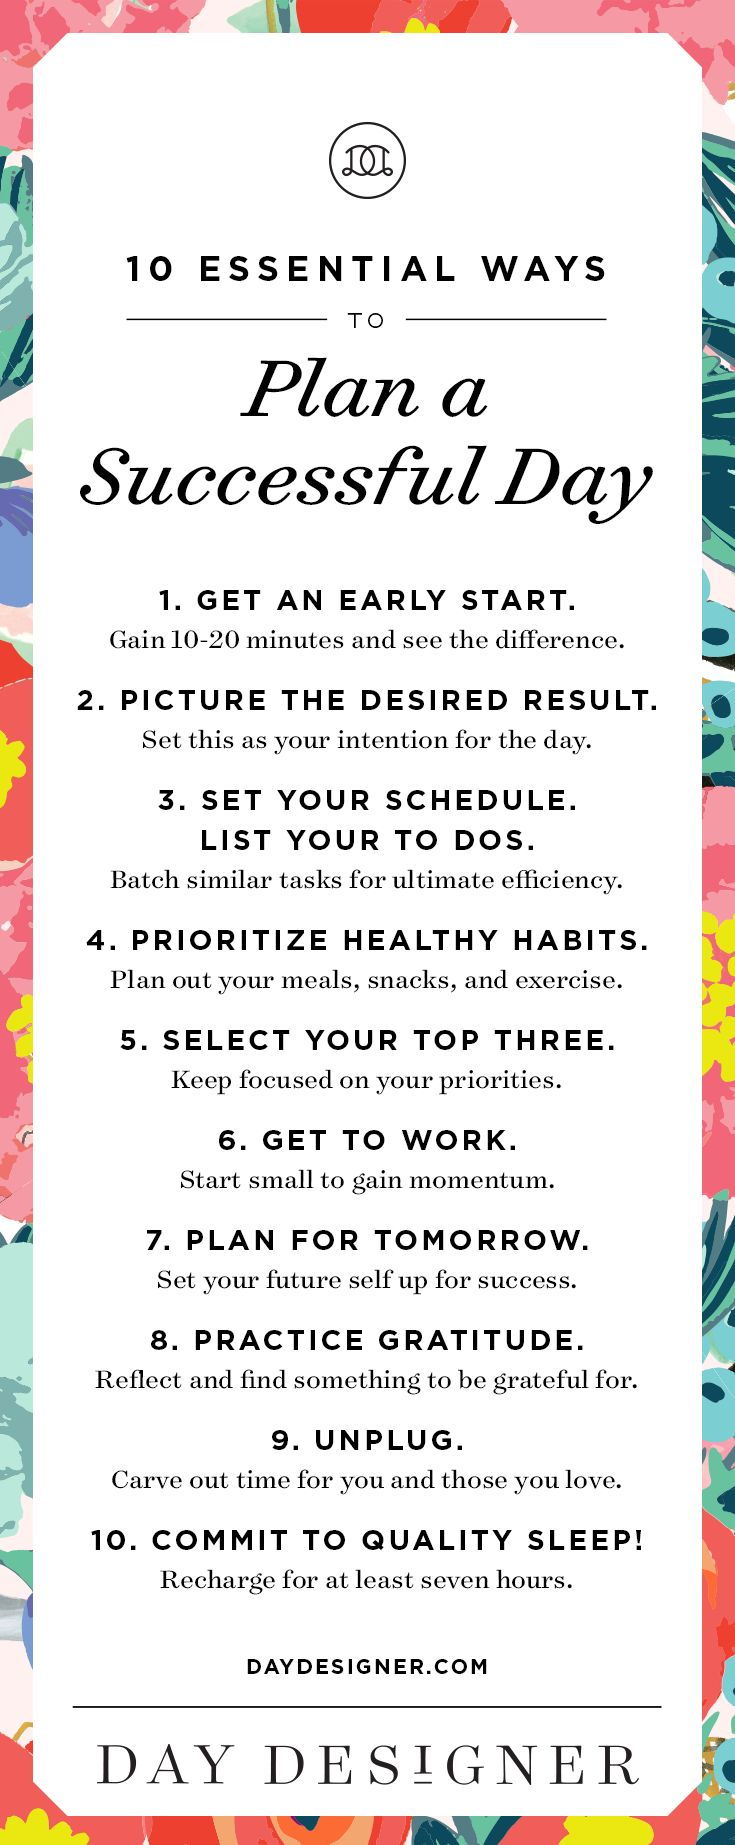 10 Essential Ways to Plan a Successful Day   Day Designer   The strategic planner and daily agenda for living a well-designed life.